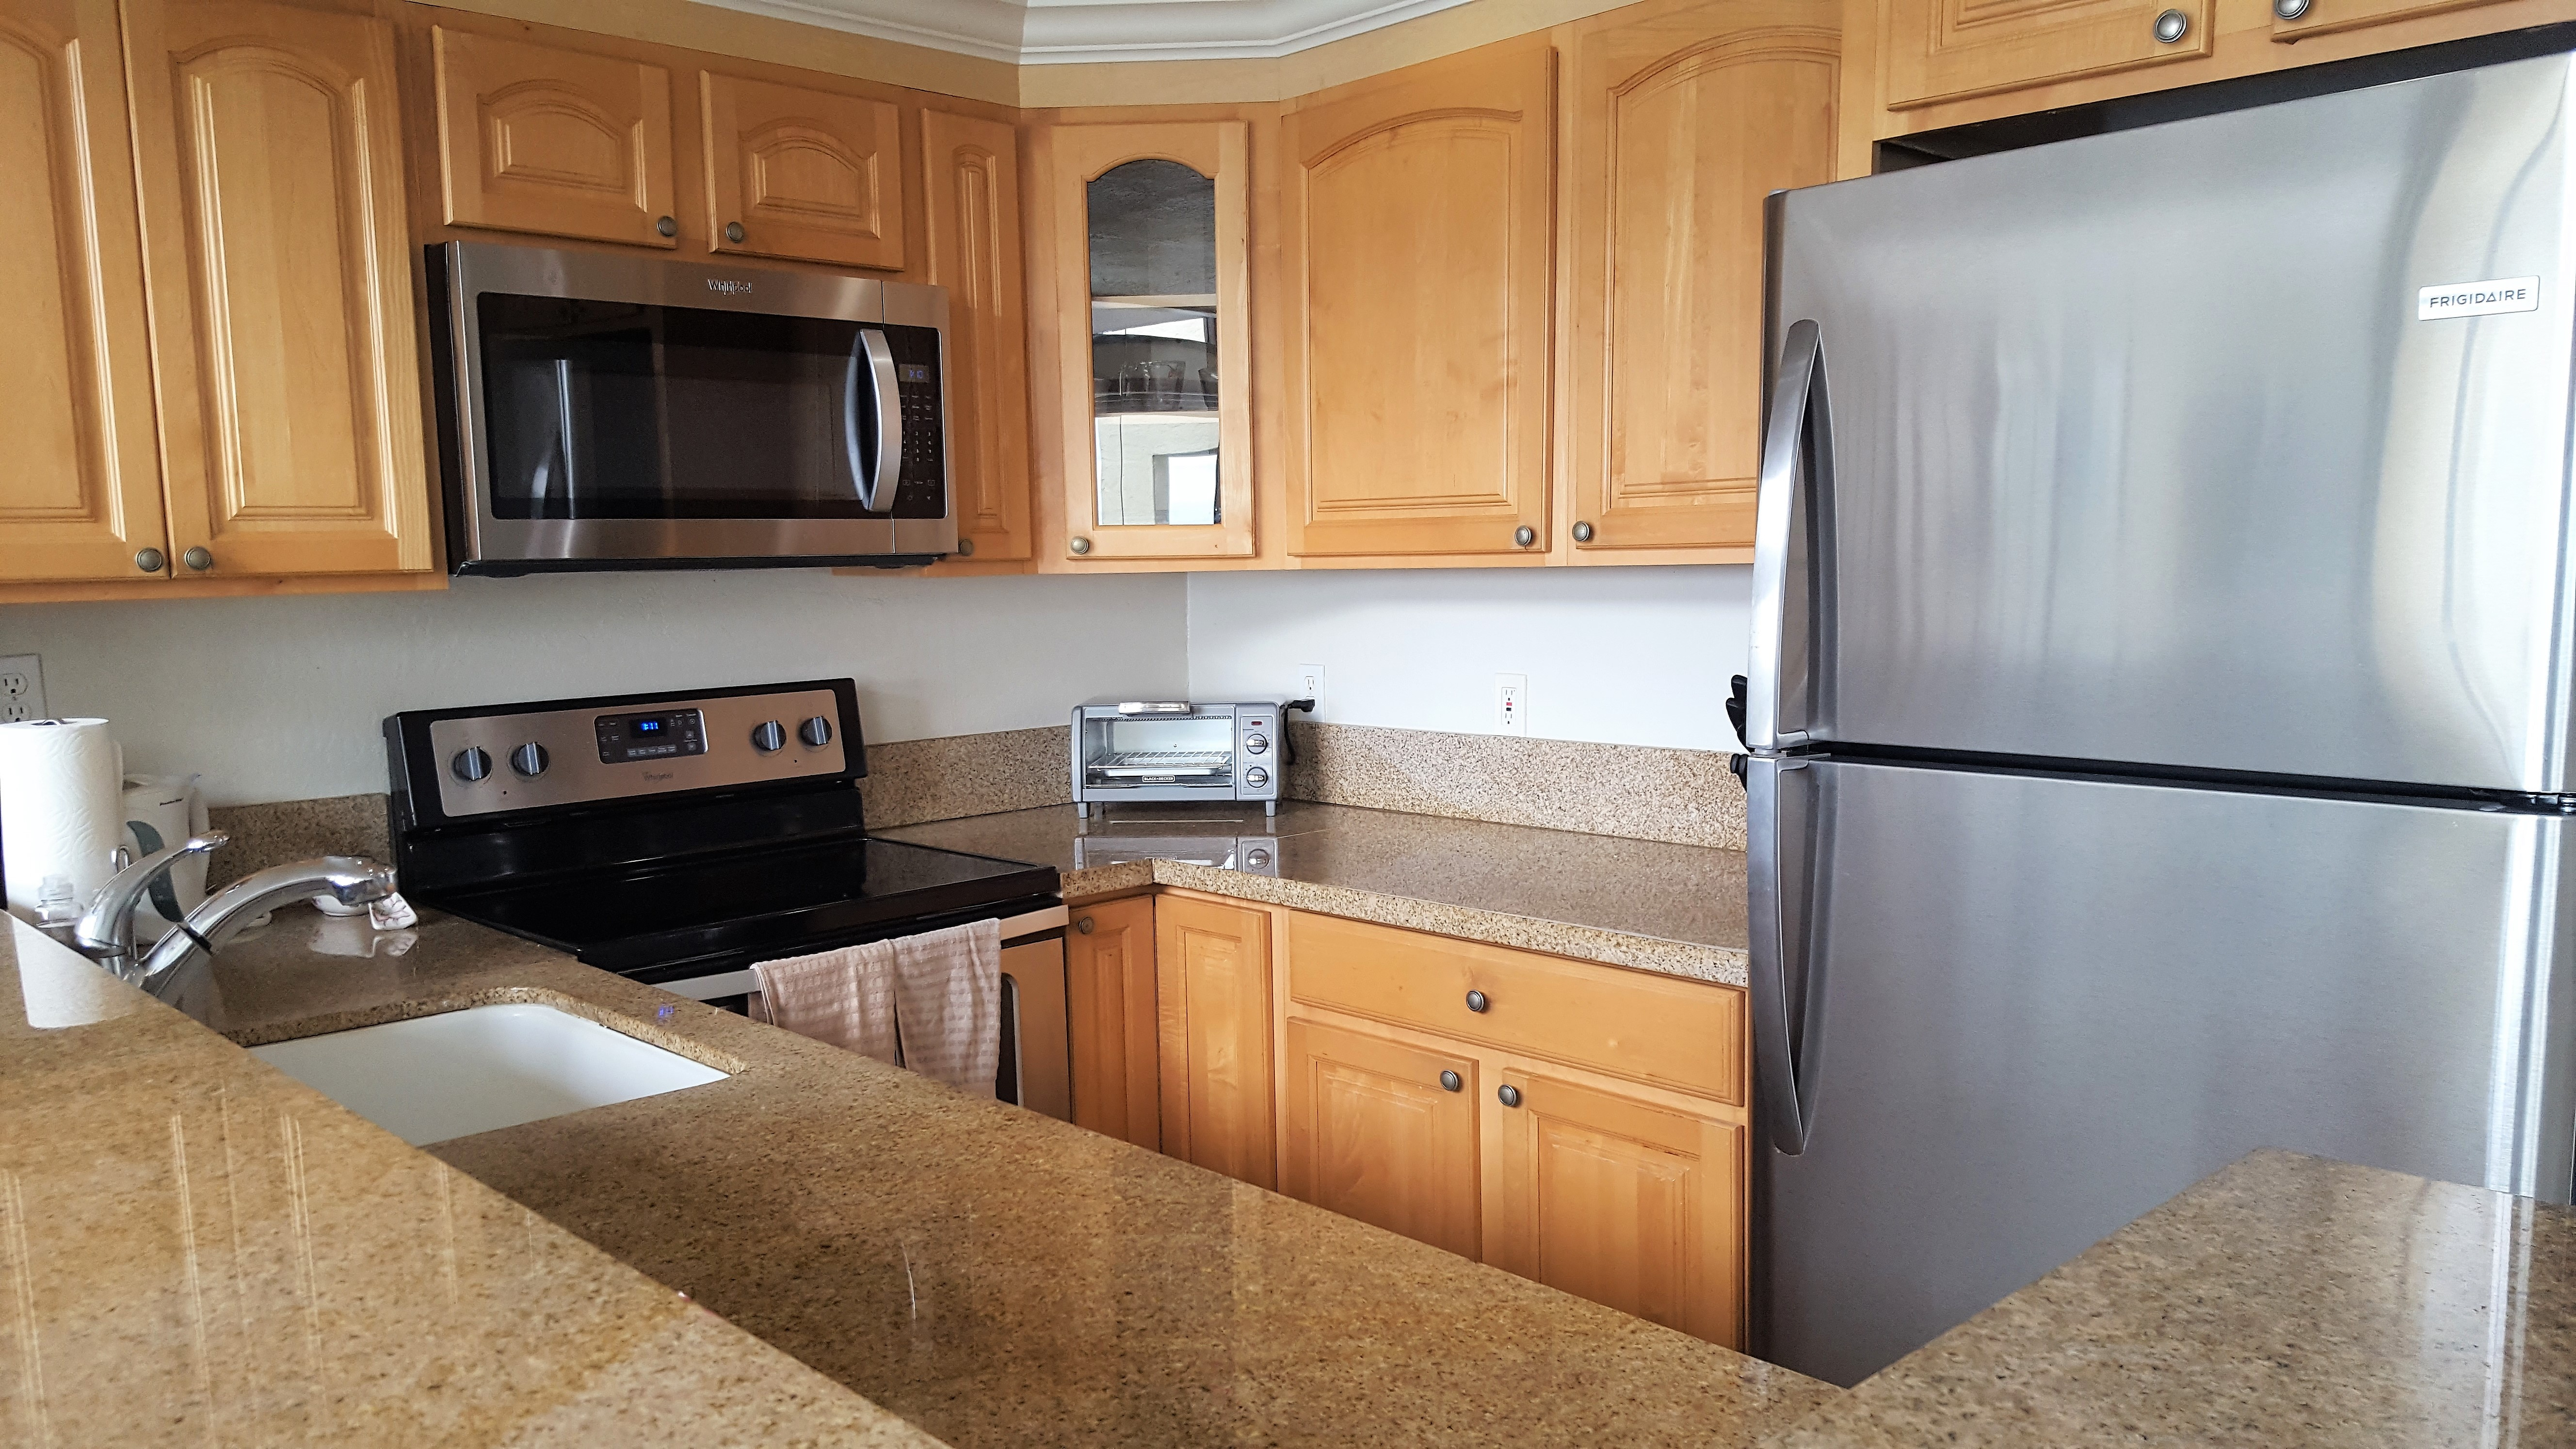 C25 Fully equipped kitchen